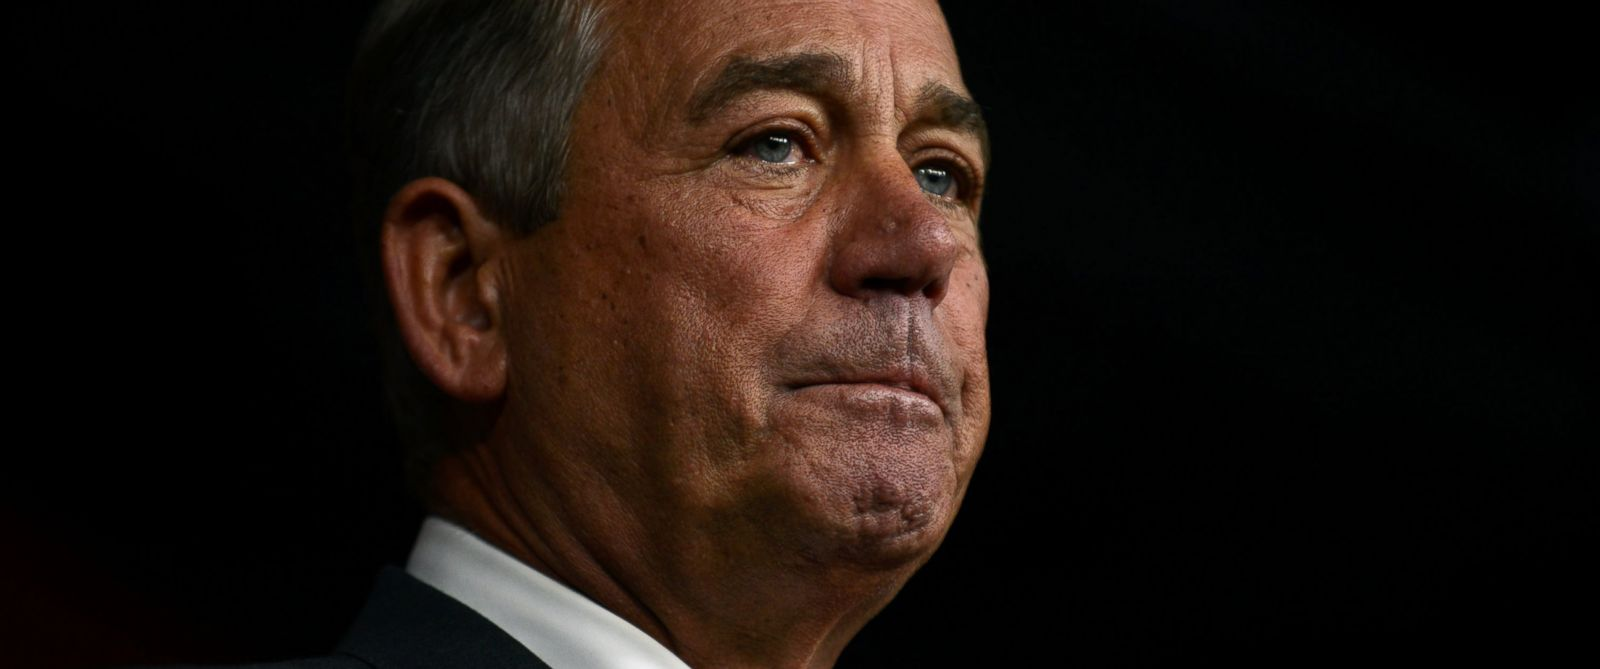 PHOTO: House Speaker John Boehner announces his resignation during a press conference on Capitol Hill, Sept. 25, 2015 in Washington.